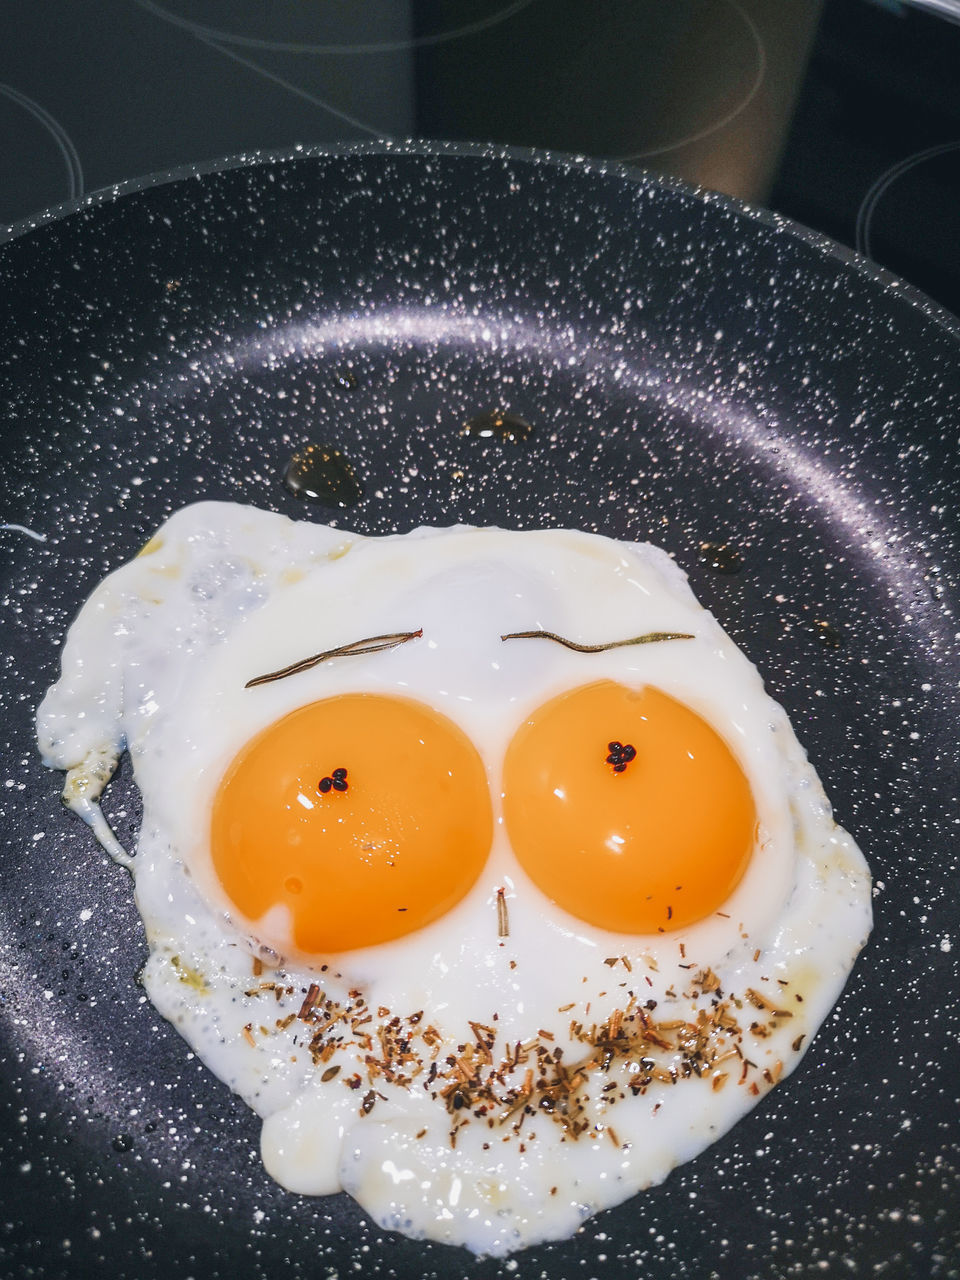 HIGH ANGLE VIEW OF BREAKFAST SERVED IN PAN